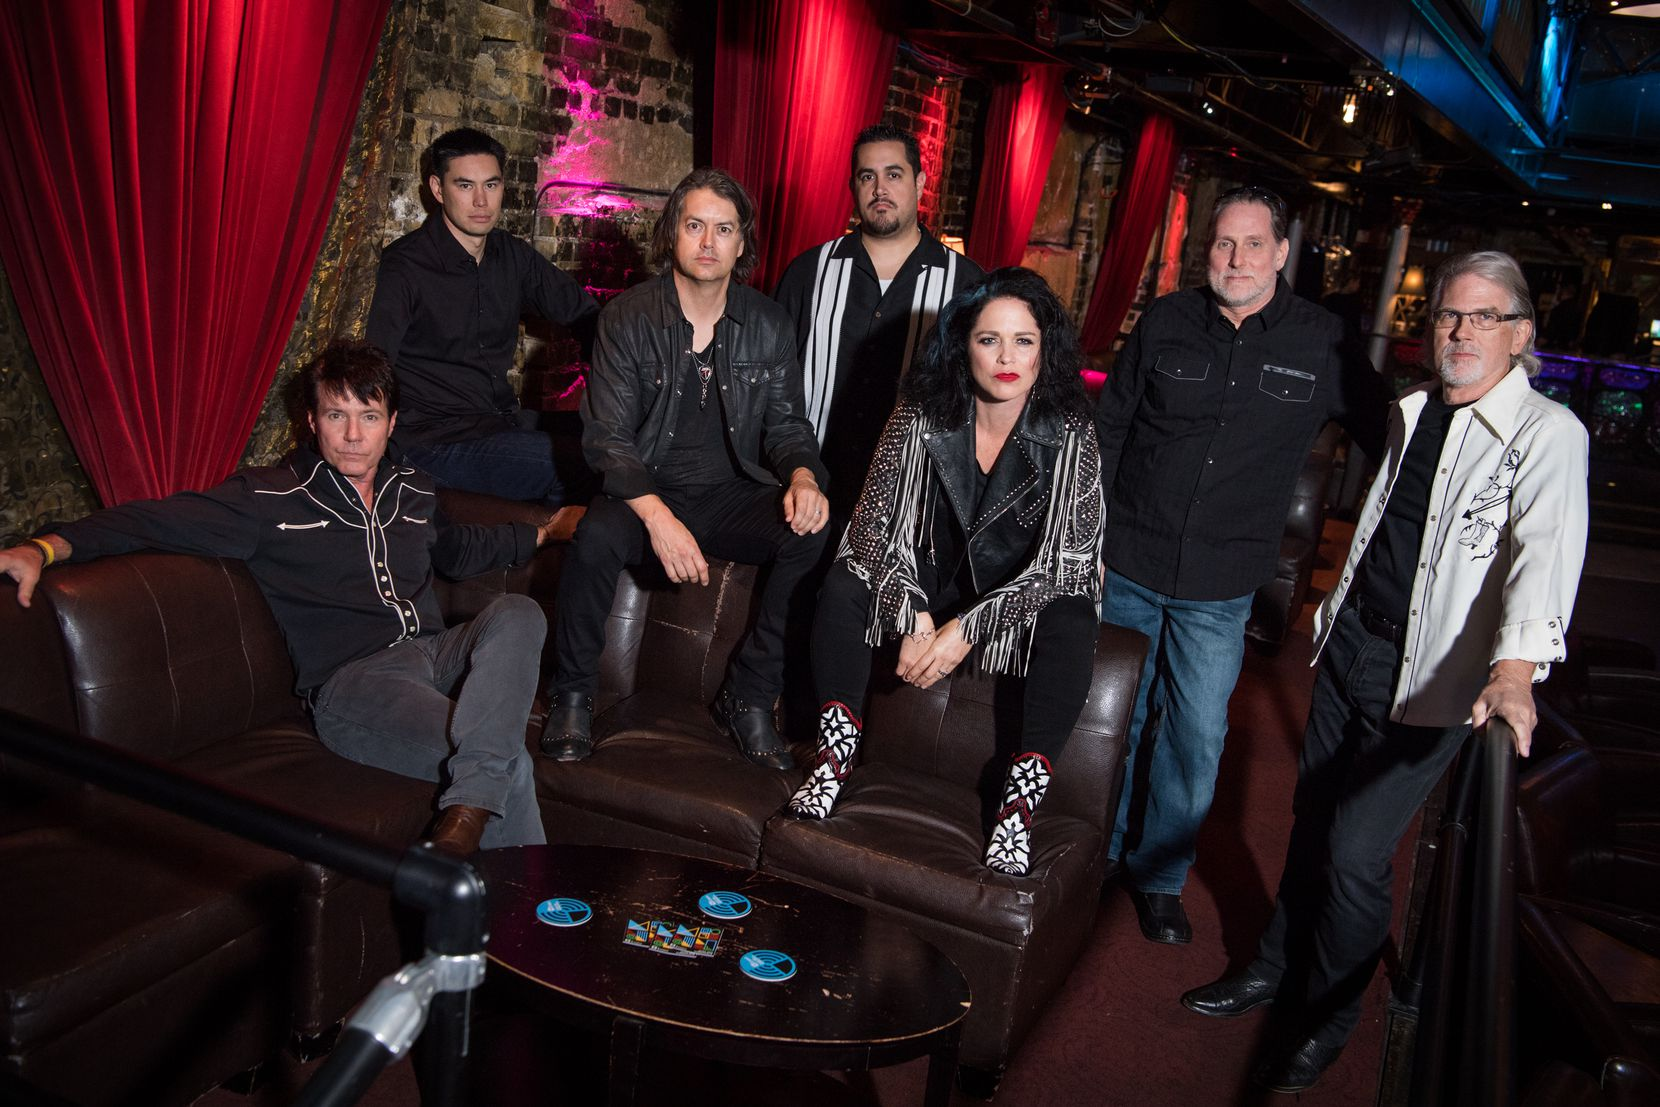 Members of the rock group GEM at the Varsity Theater in Minneapolis in June 2019. The group is led by Enseo CEO Vanessa Ogle and includes her husband, Paul Bullock, and Enseo executives.   From left: Jeff Smith, vice president-sales; Kevin Sweeney, vice president-product marketing; Bullock; Alex Ocampo, product manager; Ogle; Craig Smith, director of engineering; and Peyton Wimmer, chief cultural officer.